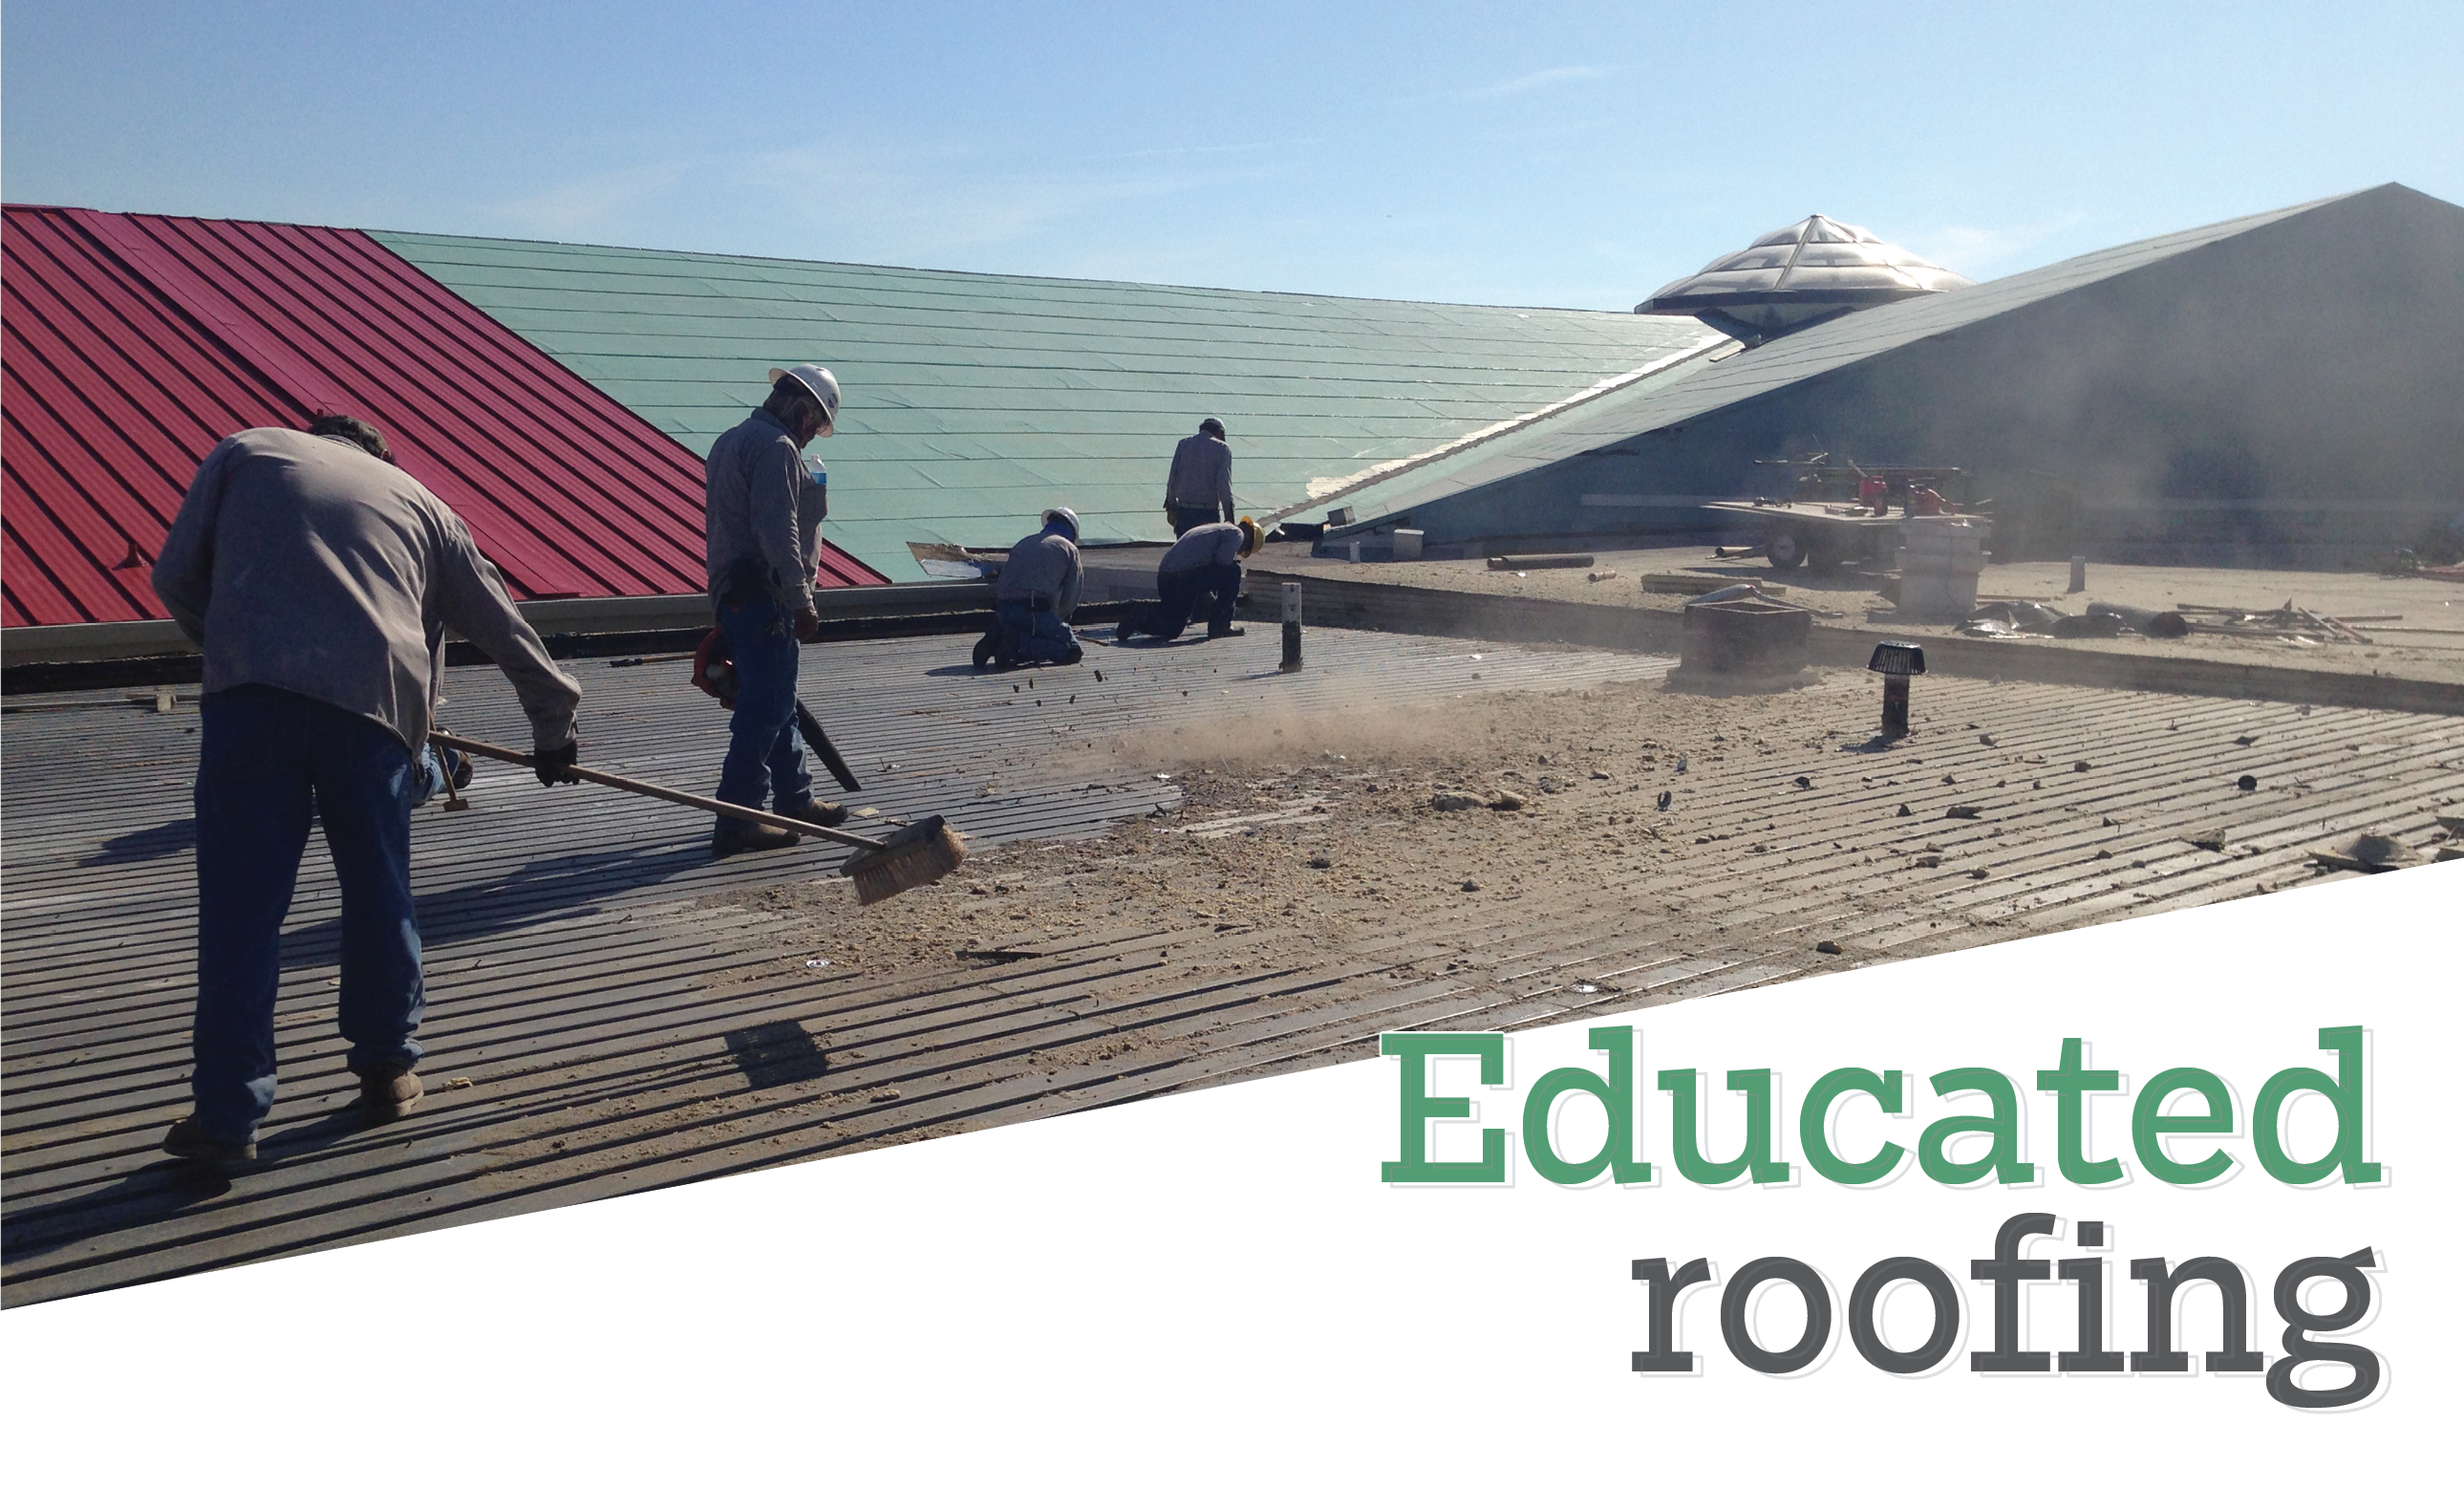 Educated roofing - Rio Roofing corrects leak issues on Roma High School in Texas